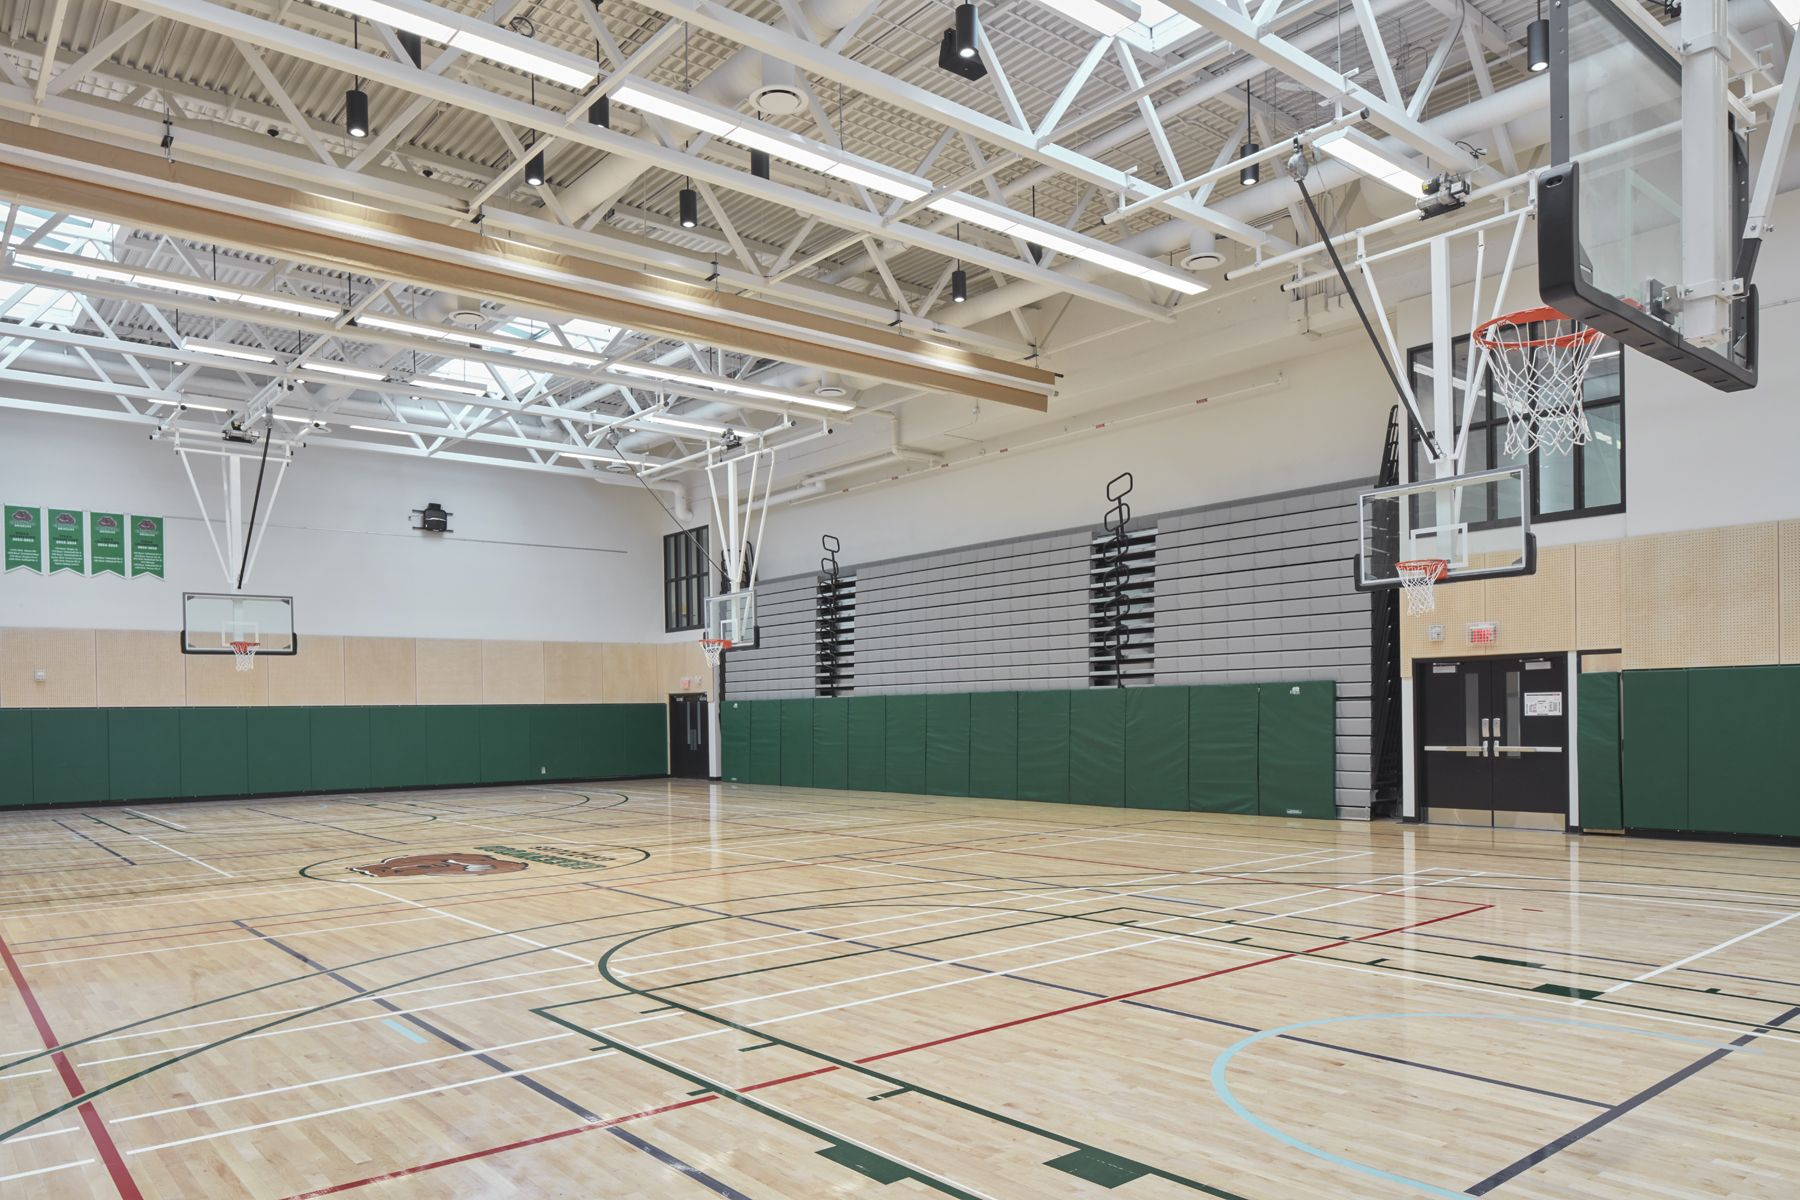 Our expanded gym, featuring retractable seating, is used for physical education classes, games, assemblies, ceremonies and more. The space is filled with natural light thanks to skylights.